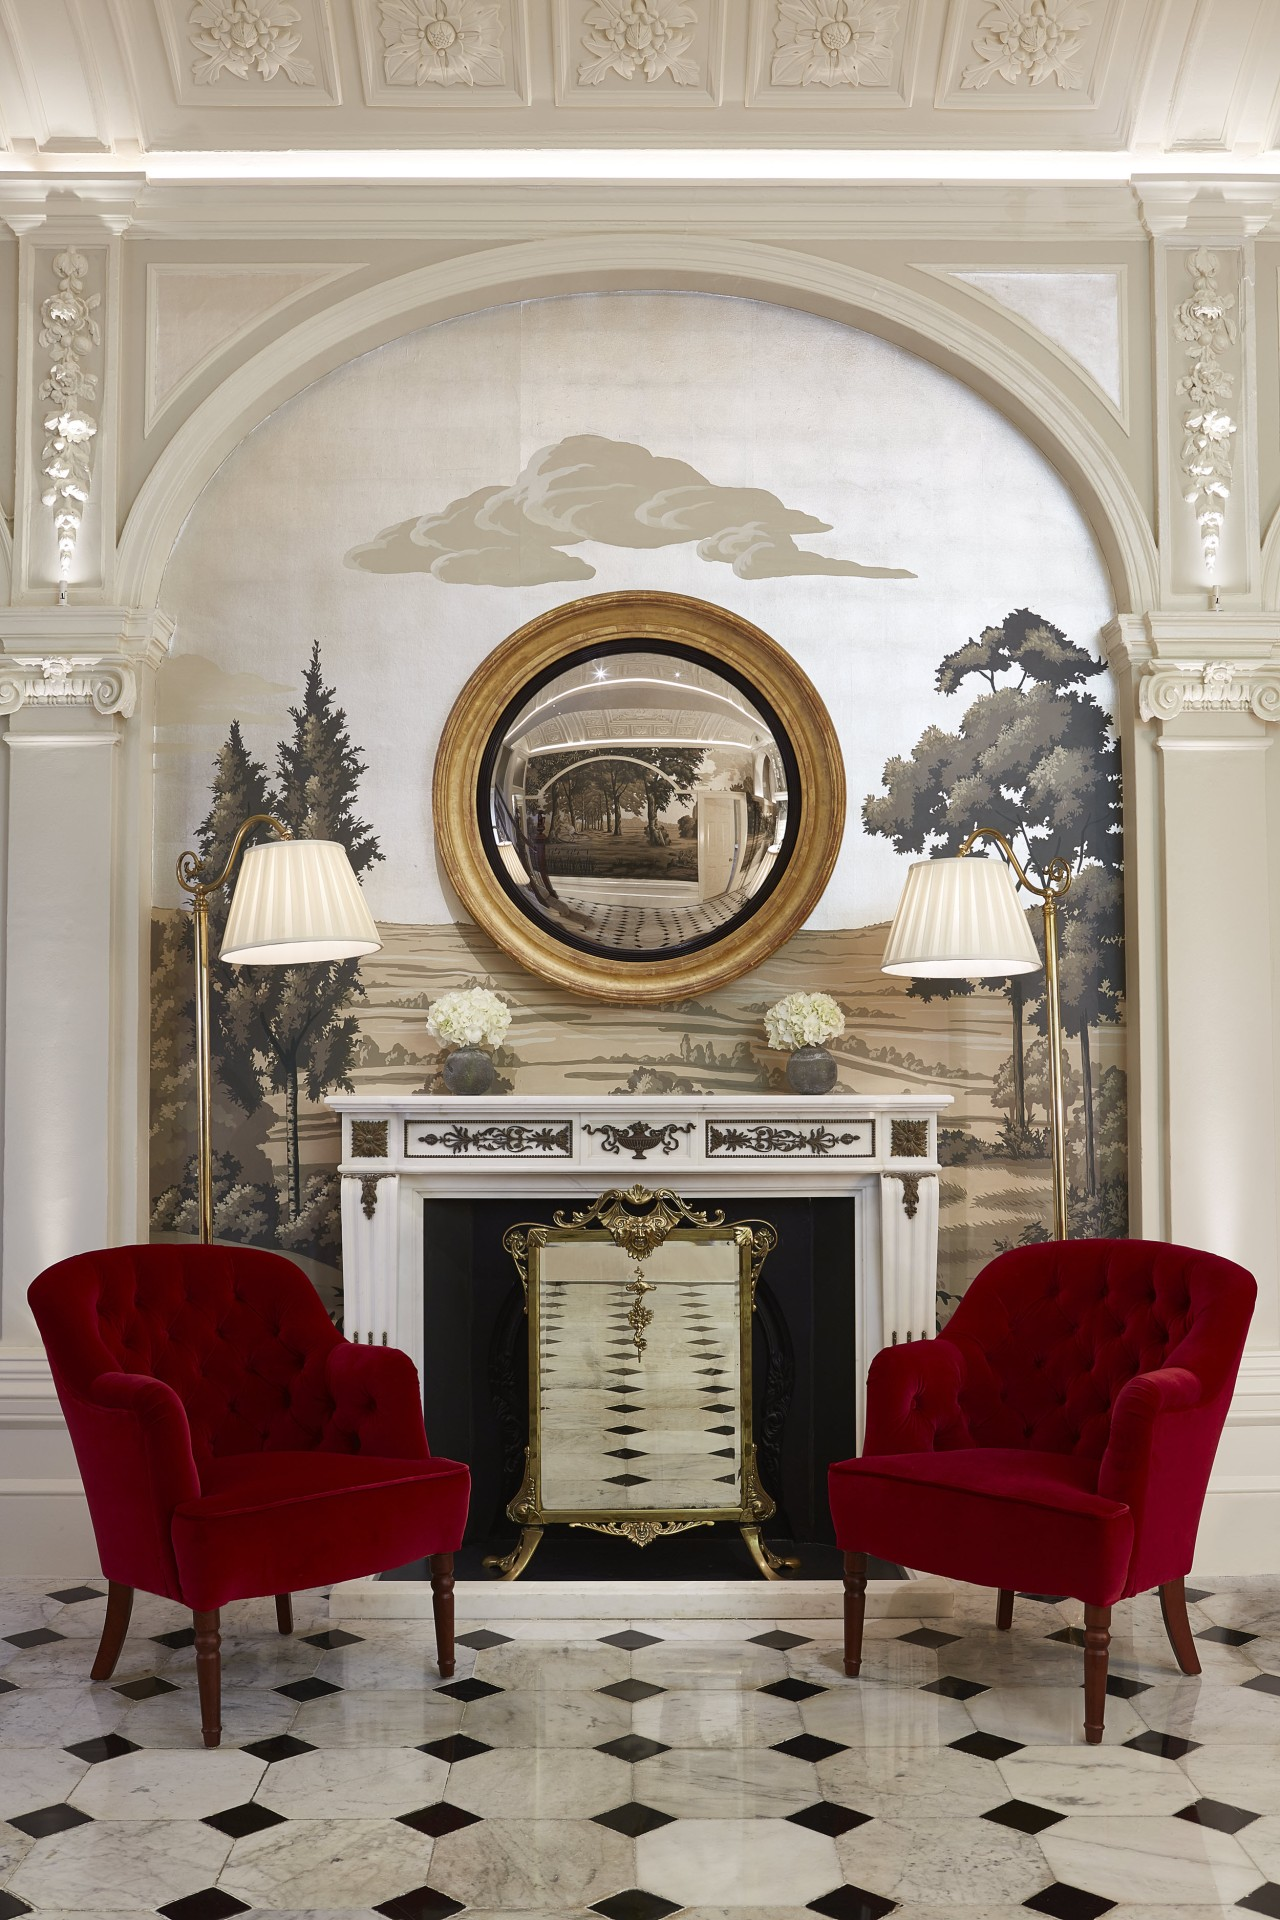 The Goring_refurbished Front Hall_Fireplace_March 2015_Med res